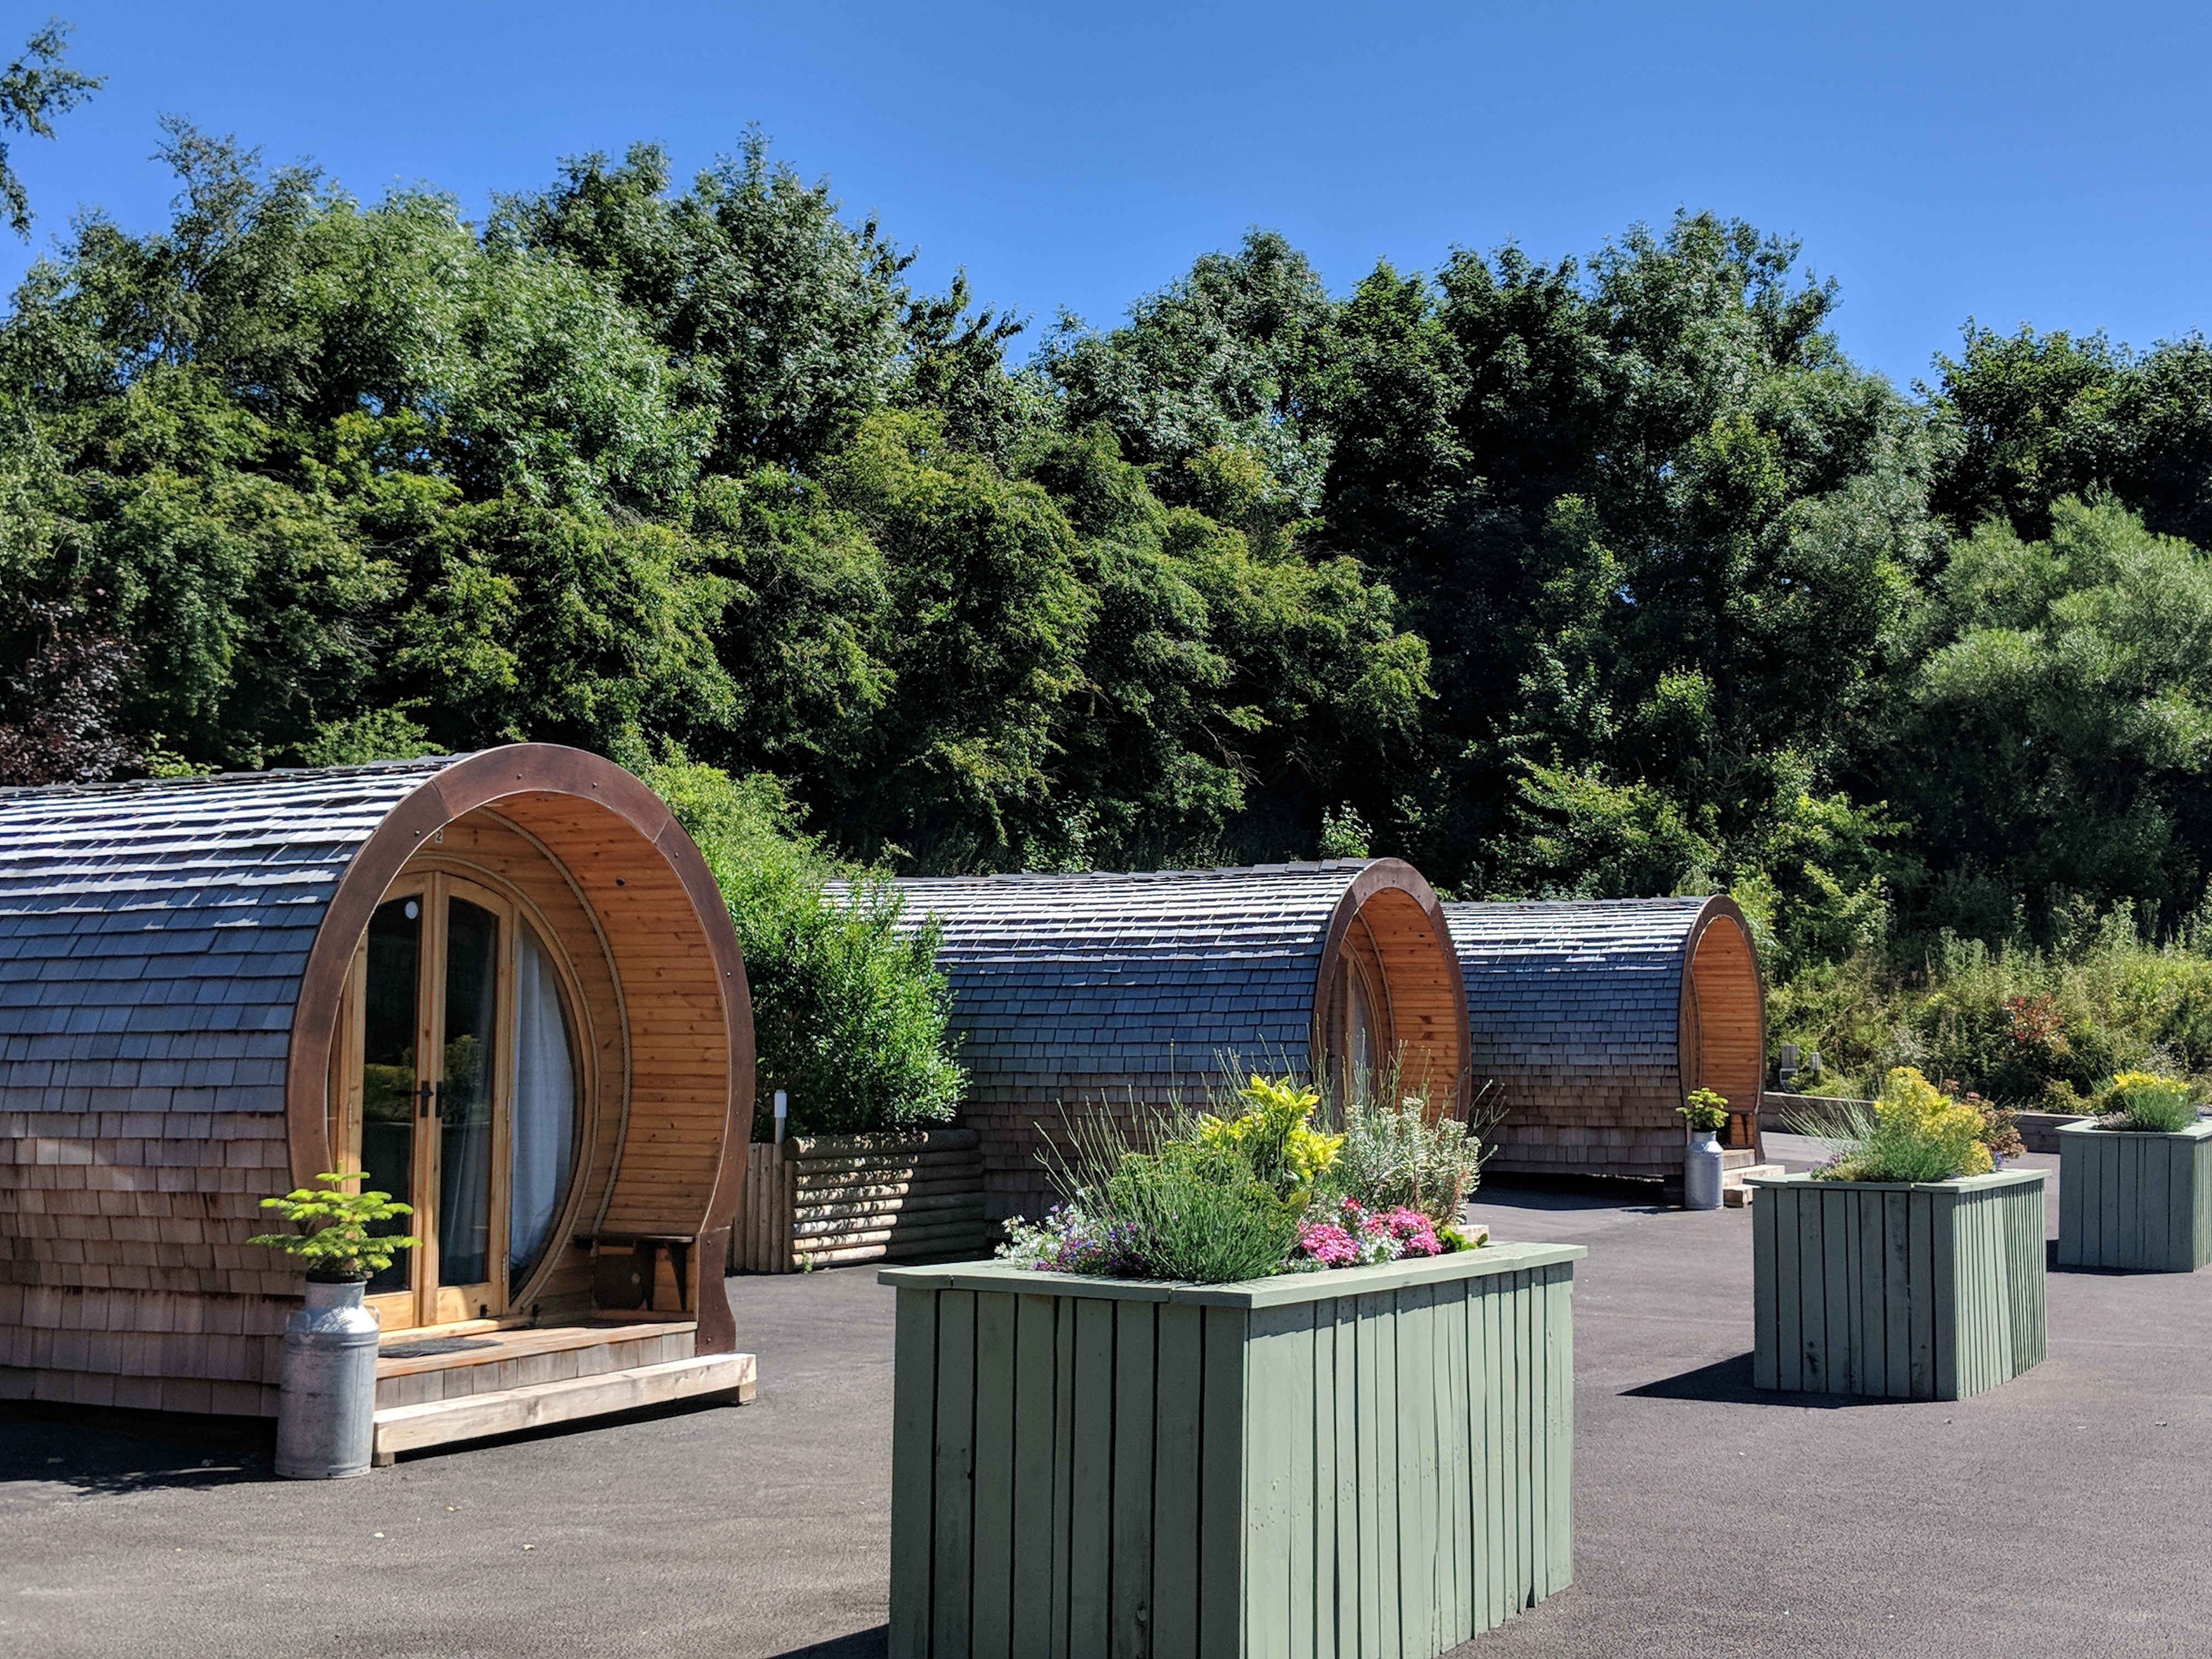 Camping pods in the Peak District. Camping pods with hot tubs.